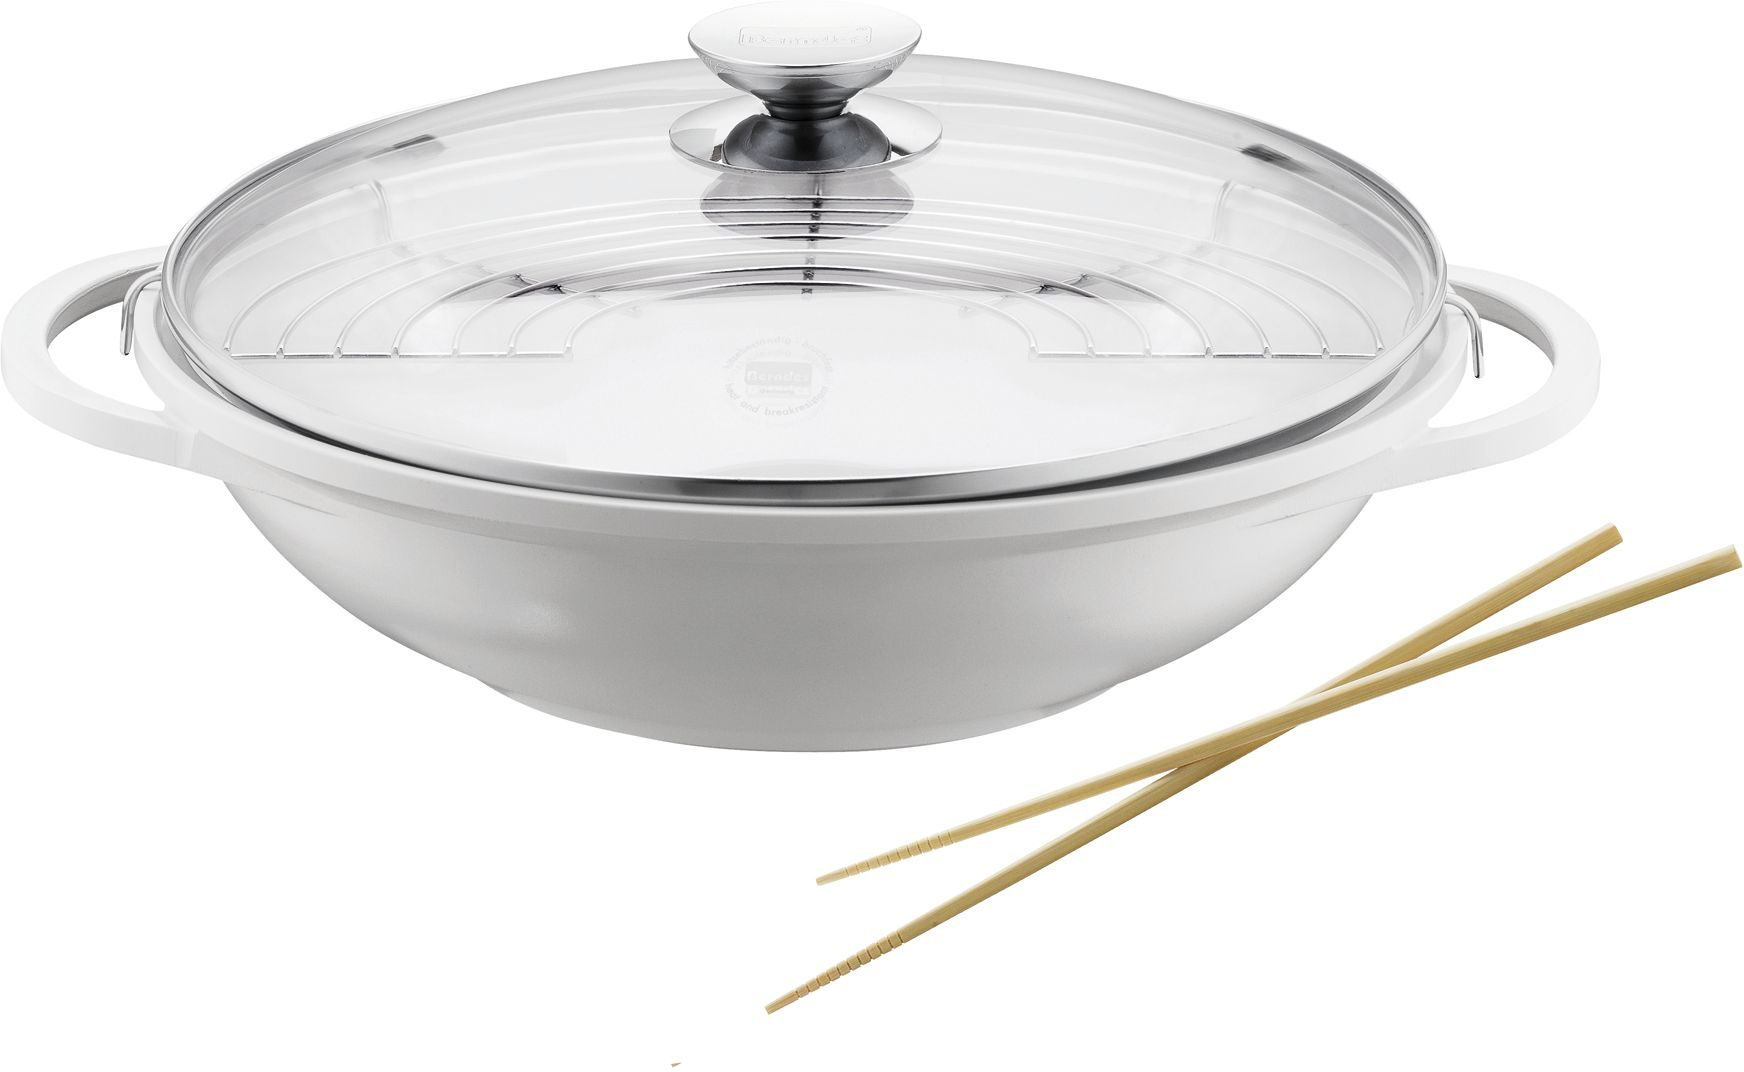 Berndes Wok mit Glasdeckel u. Zubehör, Aluguss, Induktion, 32 cm, »VARIO CLICK INDUCTION WHITE«